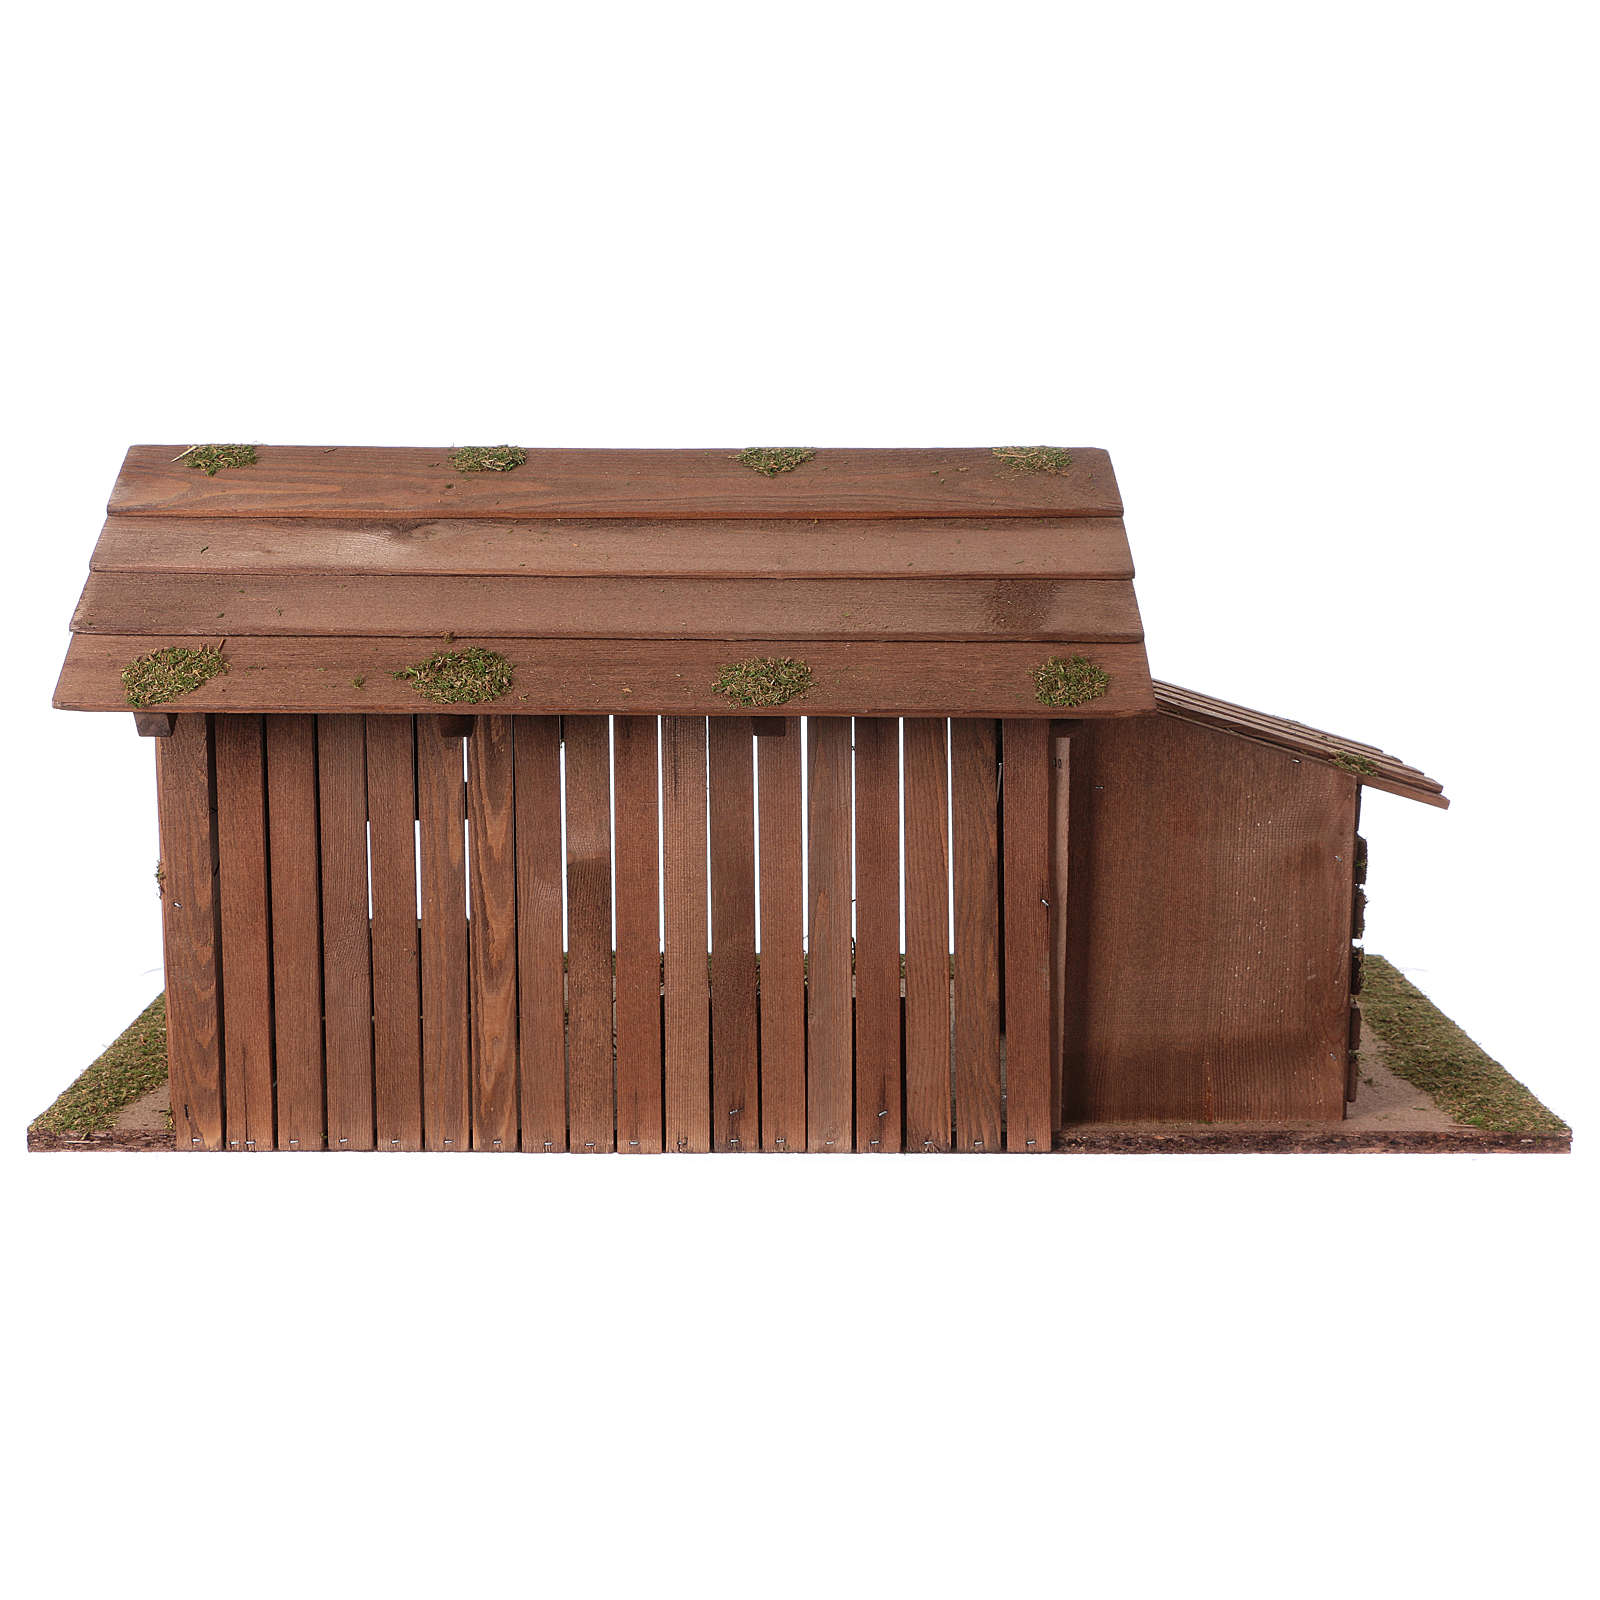 Wood barn with stall 31x70x35 cm, for 15 cm nativity 4